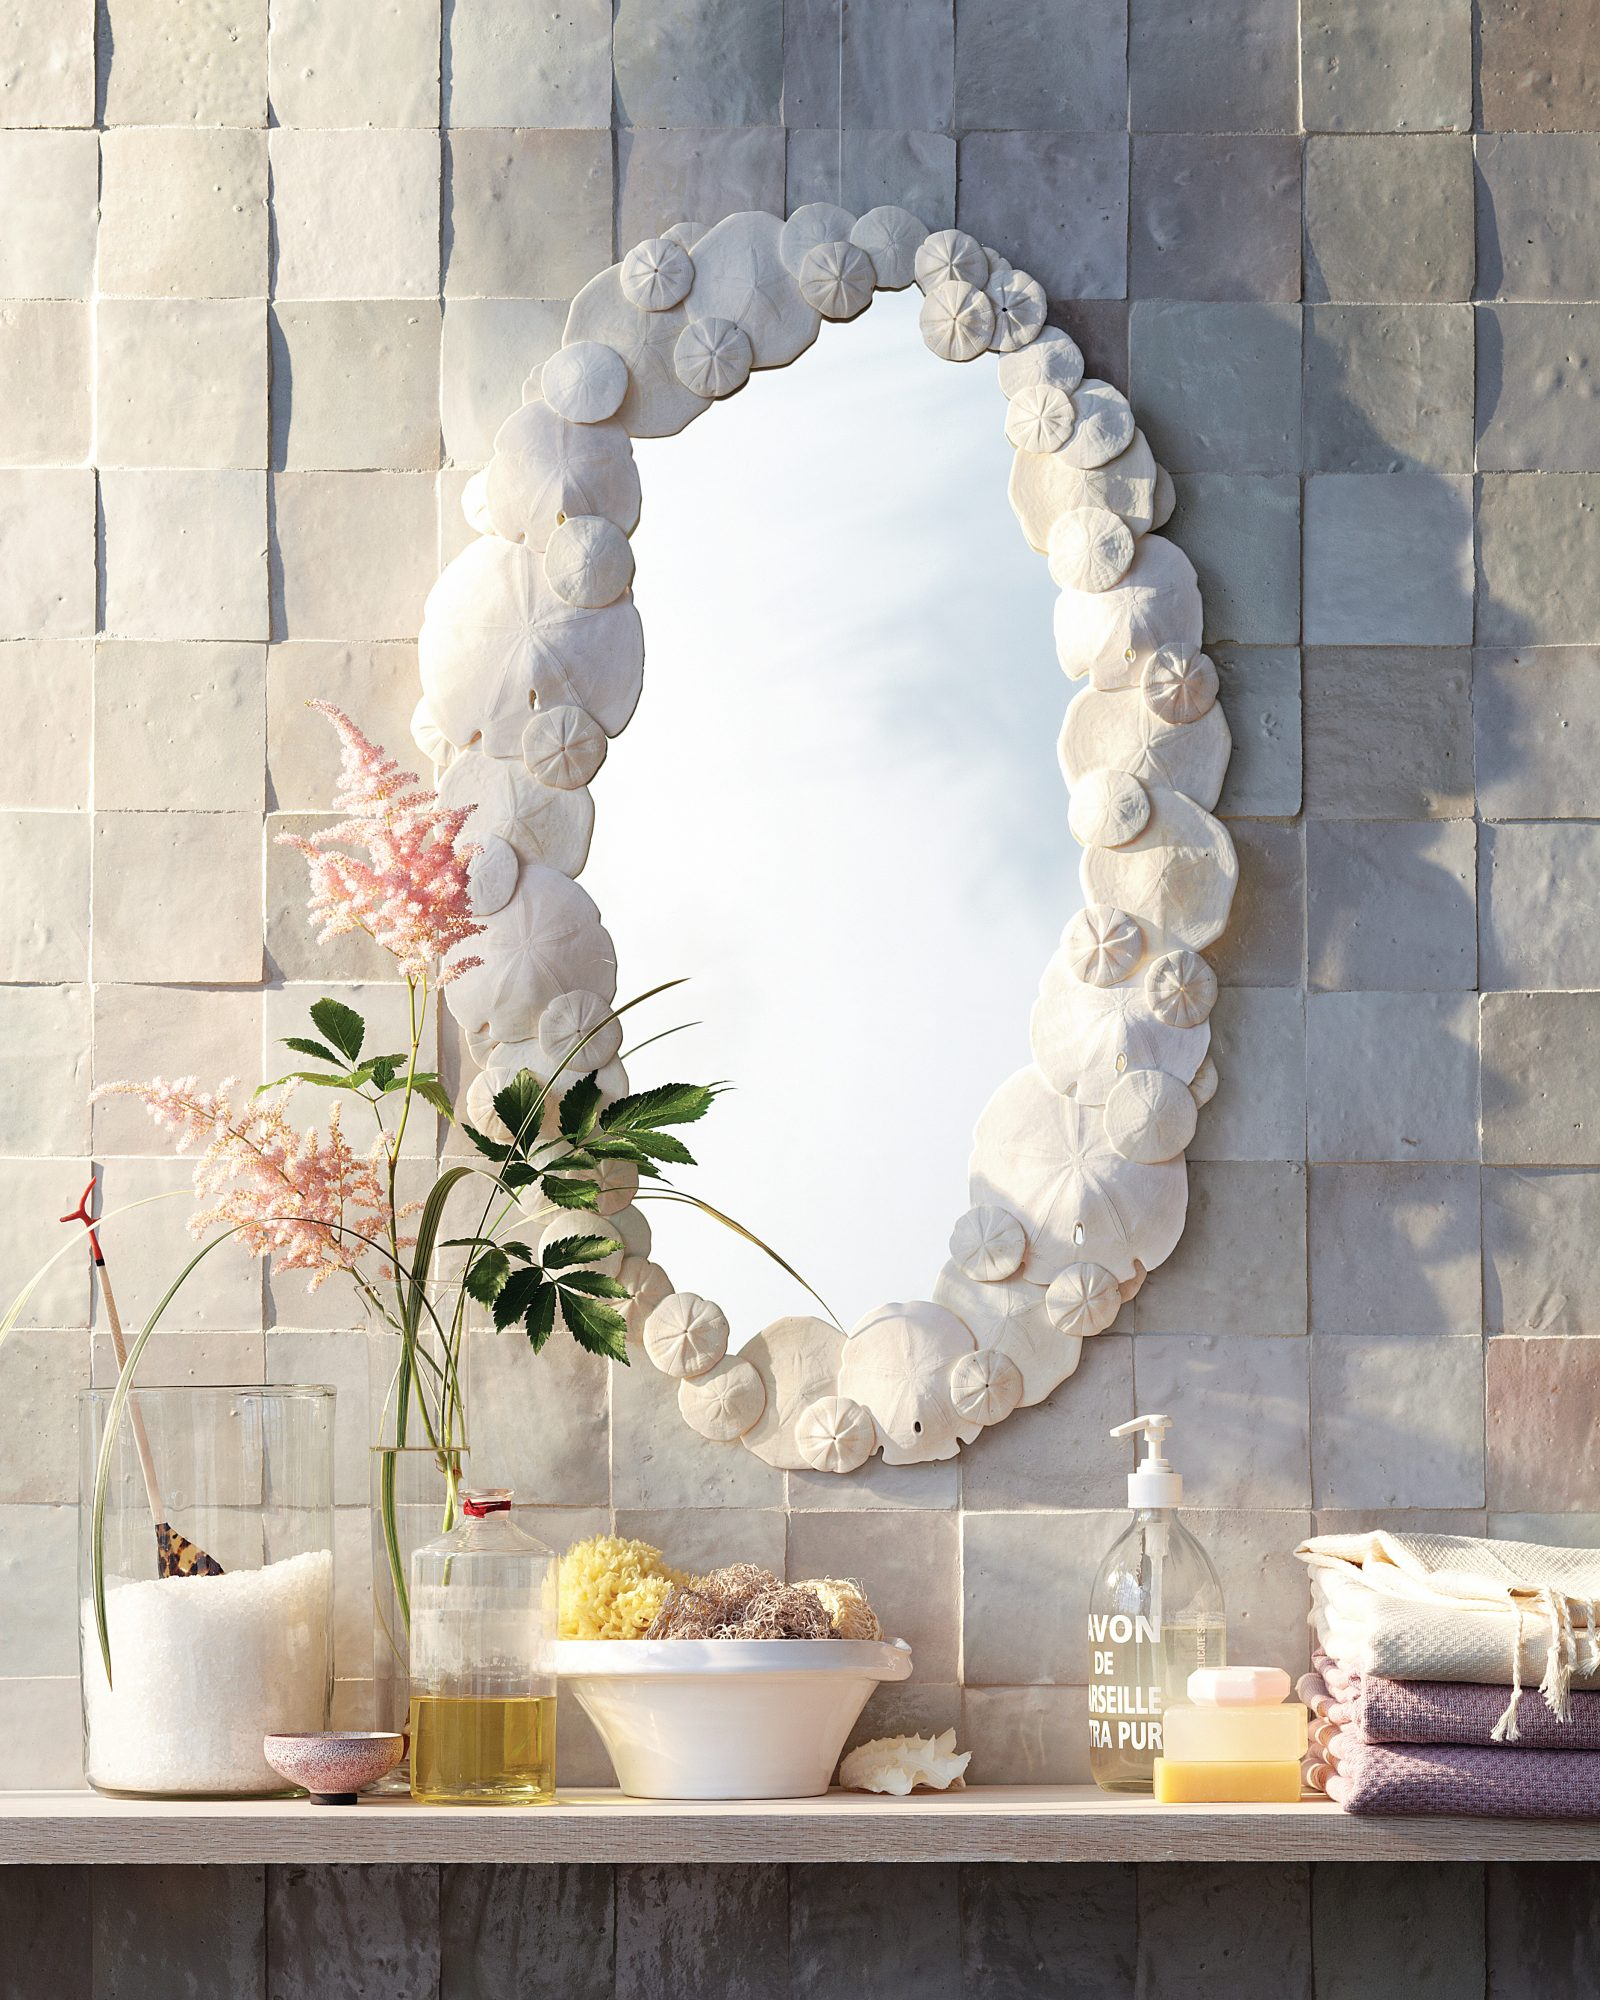 sand dollar mirror hanging on wall in bathroom